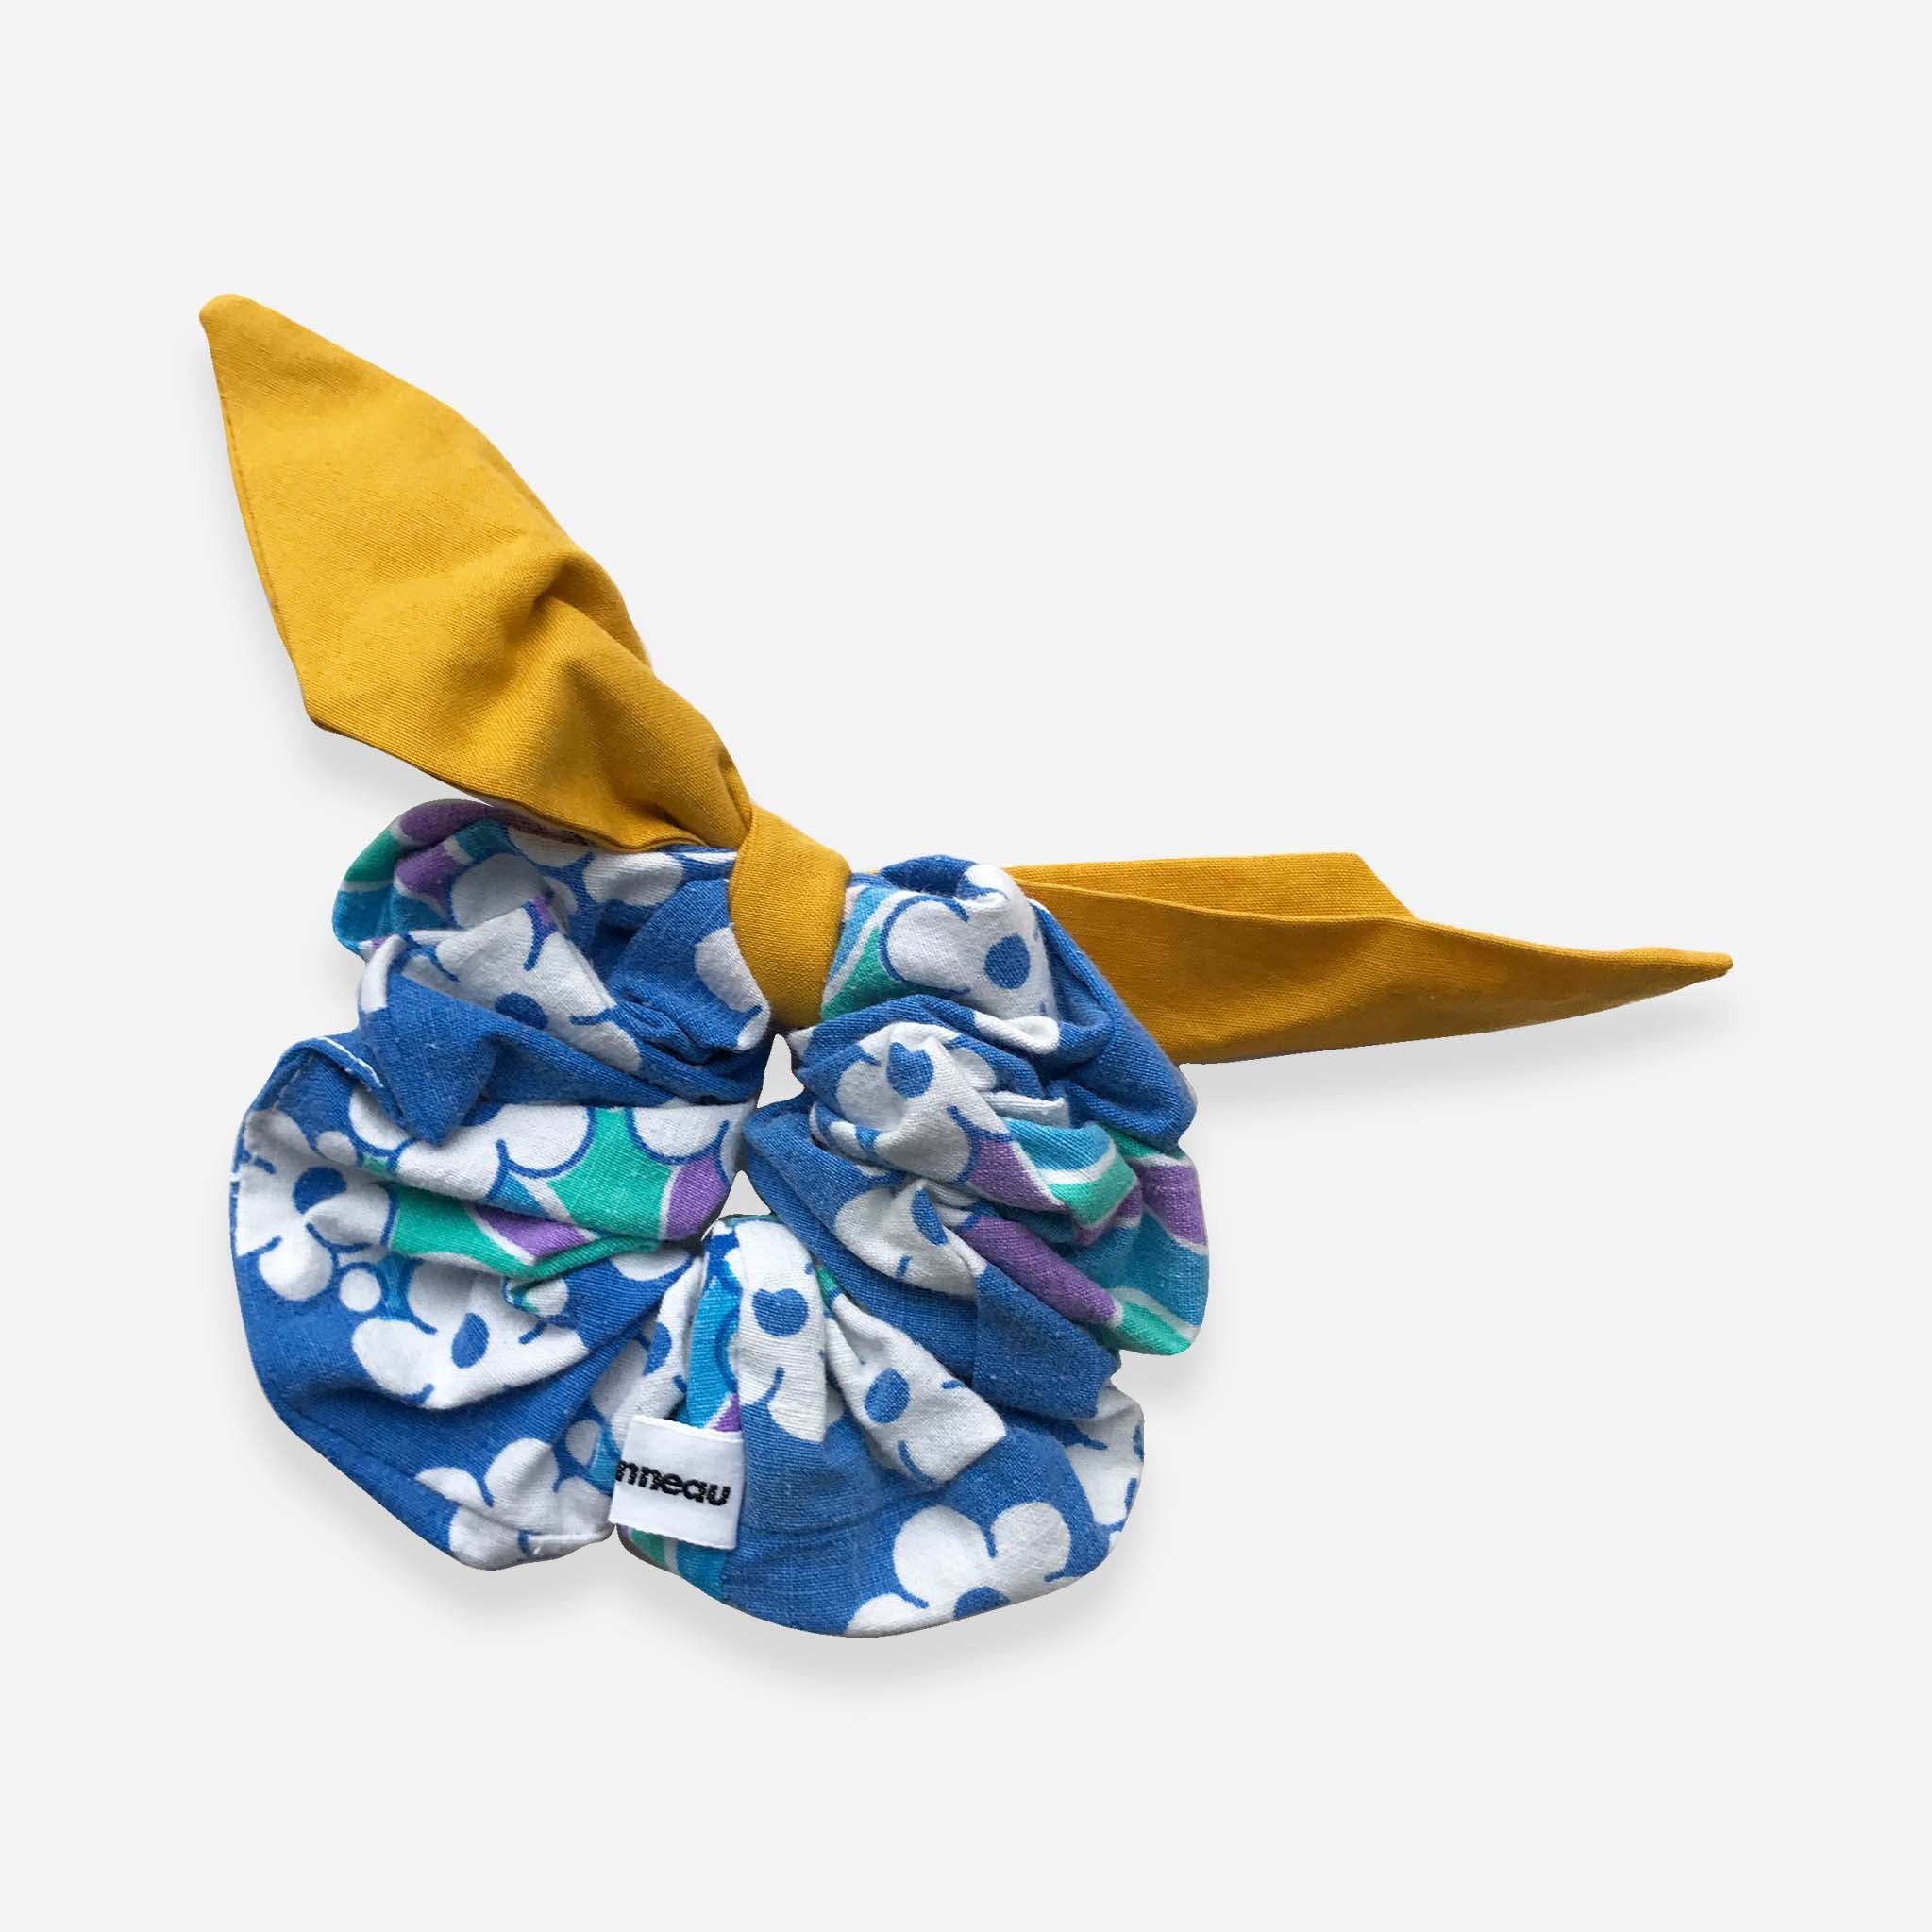 Retro Blue Hair Scrunchie - Lea Sionneau - White Space Home